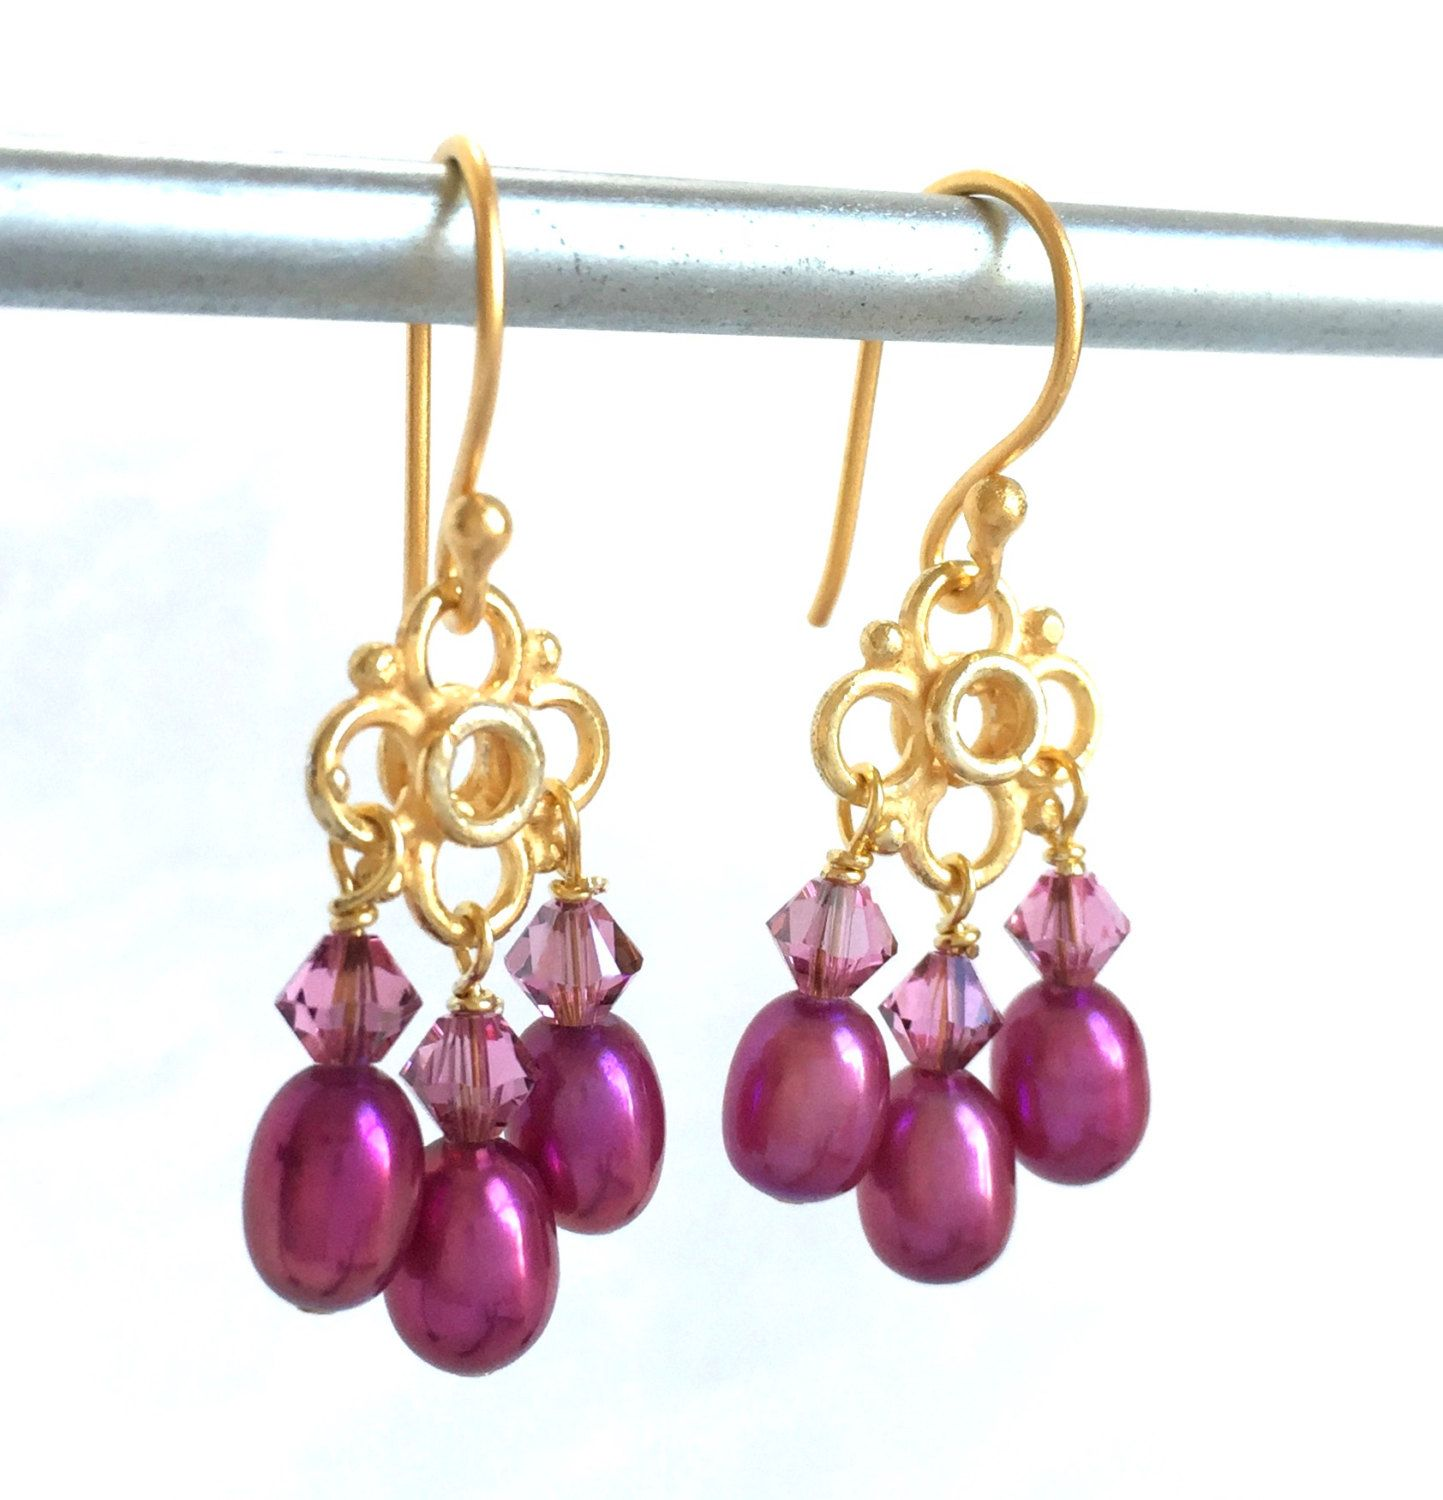 Bijou earrings with purple roses and pale cotton pearl jewelry